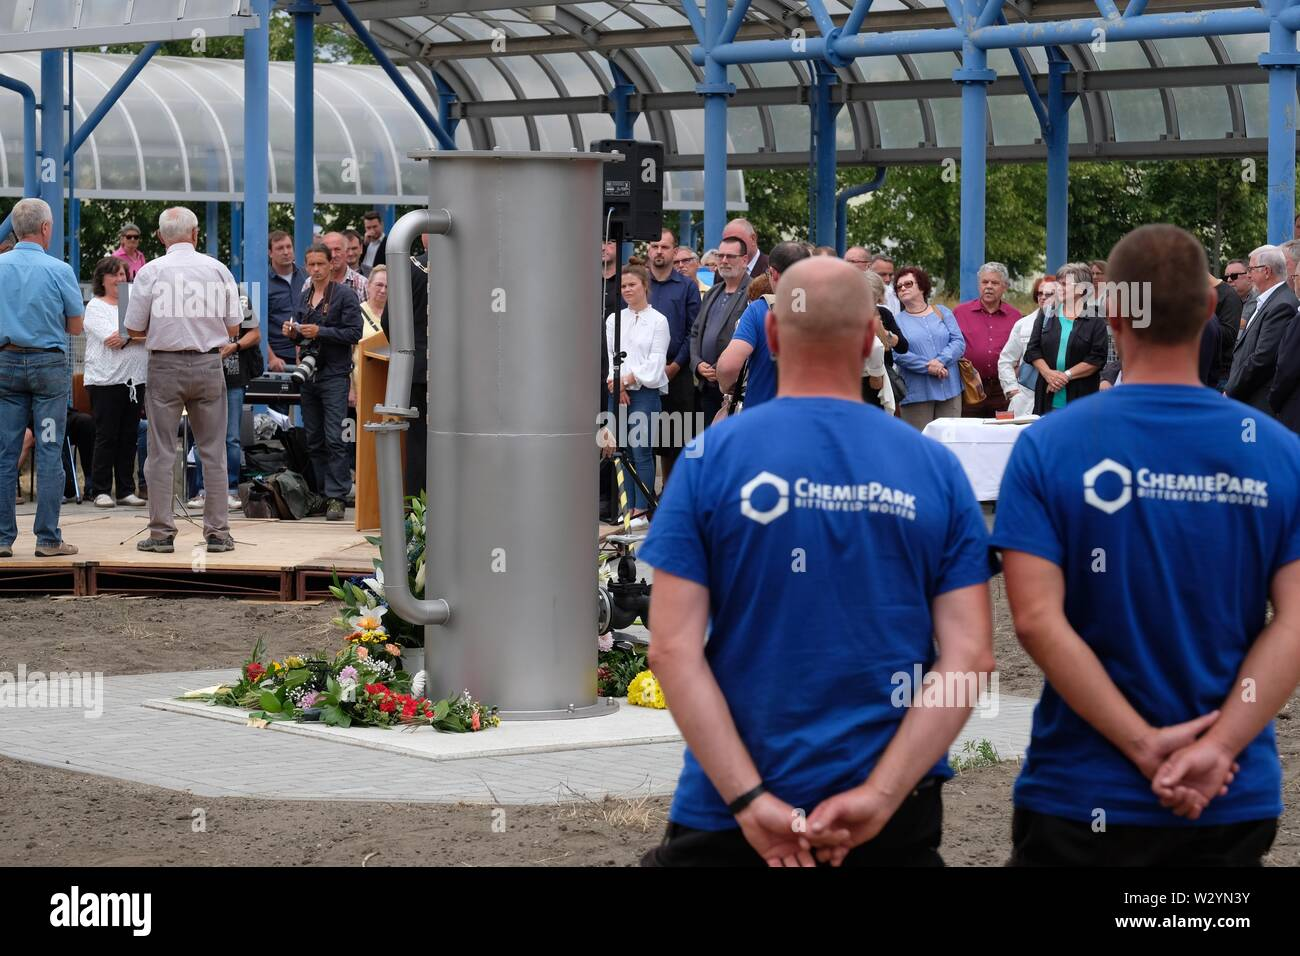 Bitterfeld Wolfen, Germany. 11th July, 2019. Participants in a commemoration ceremony stand at a monument in the Chemical Park. A stele commemorates the victims of the chemical accident of 11.07.1968, when 40 people died and more than 240 were injured. Credit: Sebastian Willnow/dpa-Zentralbild/ZB/dpa/Alamy Live News - Stock Image